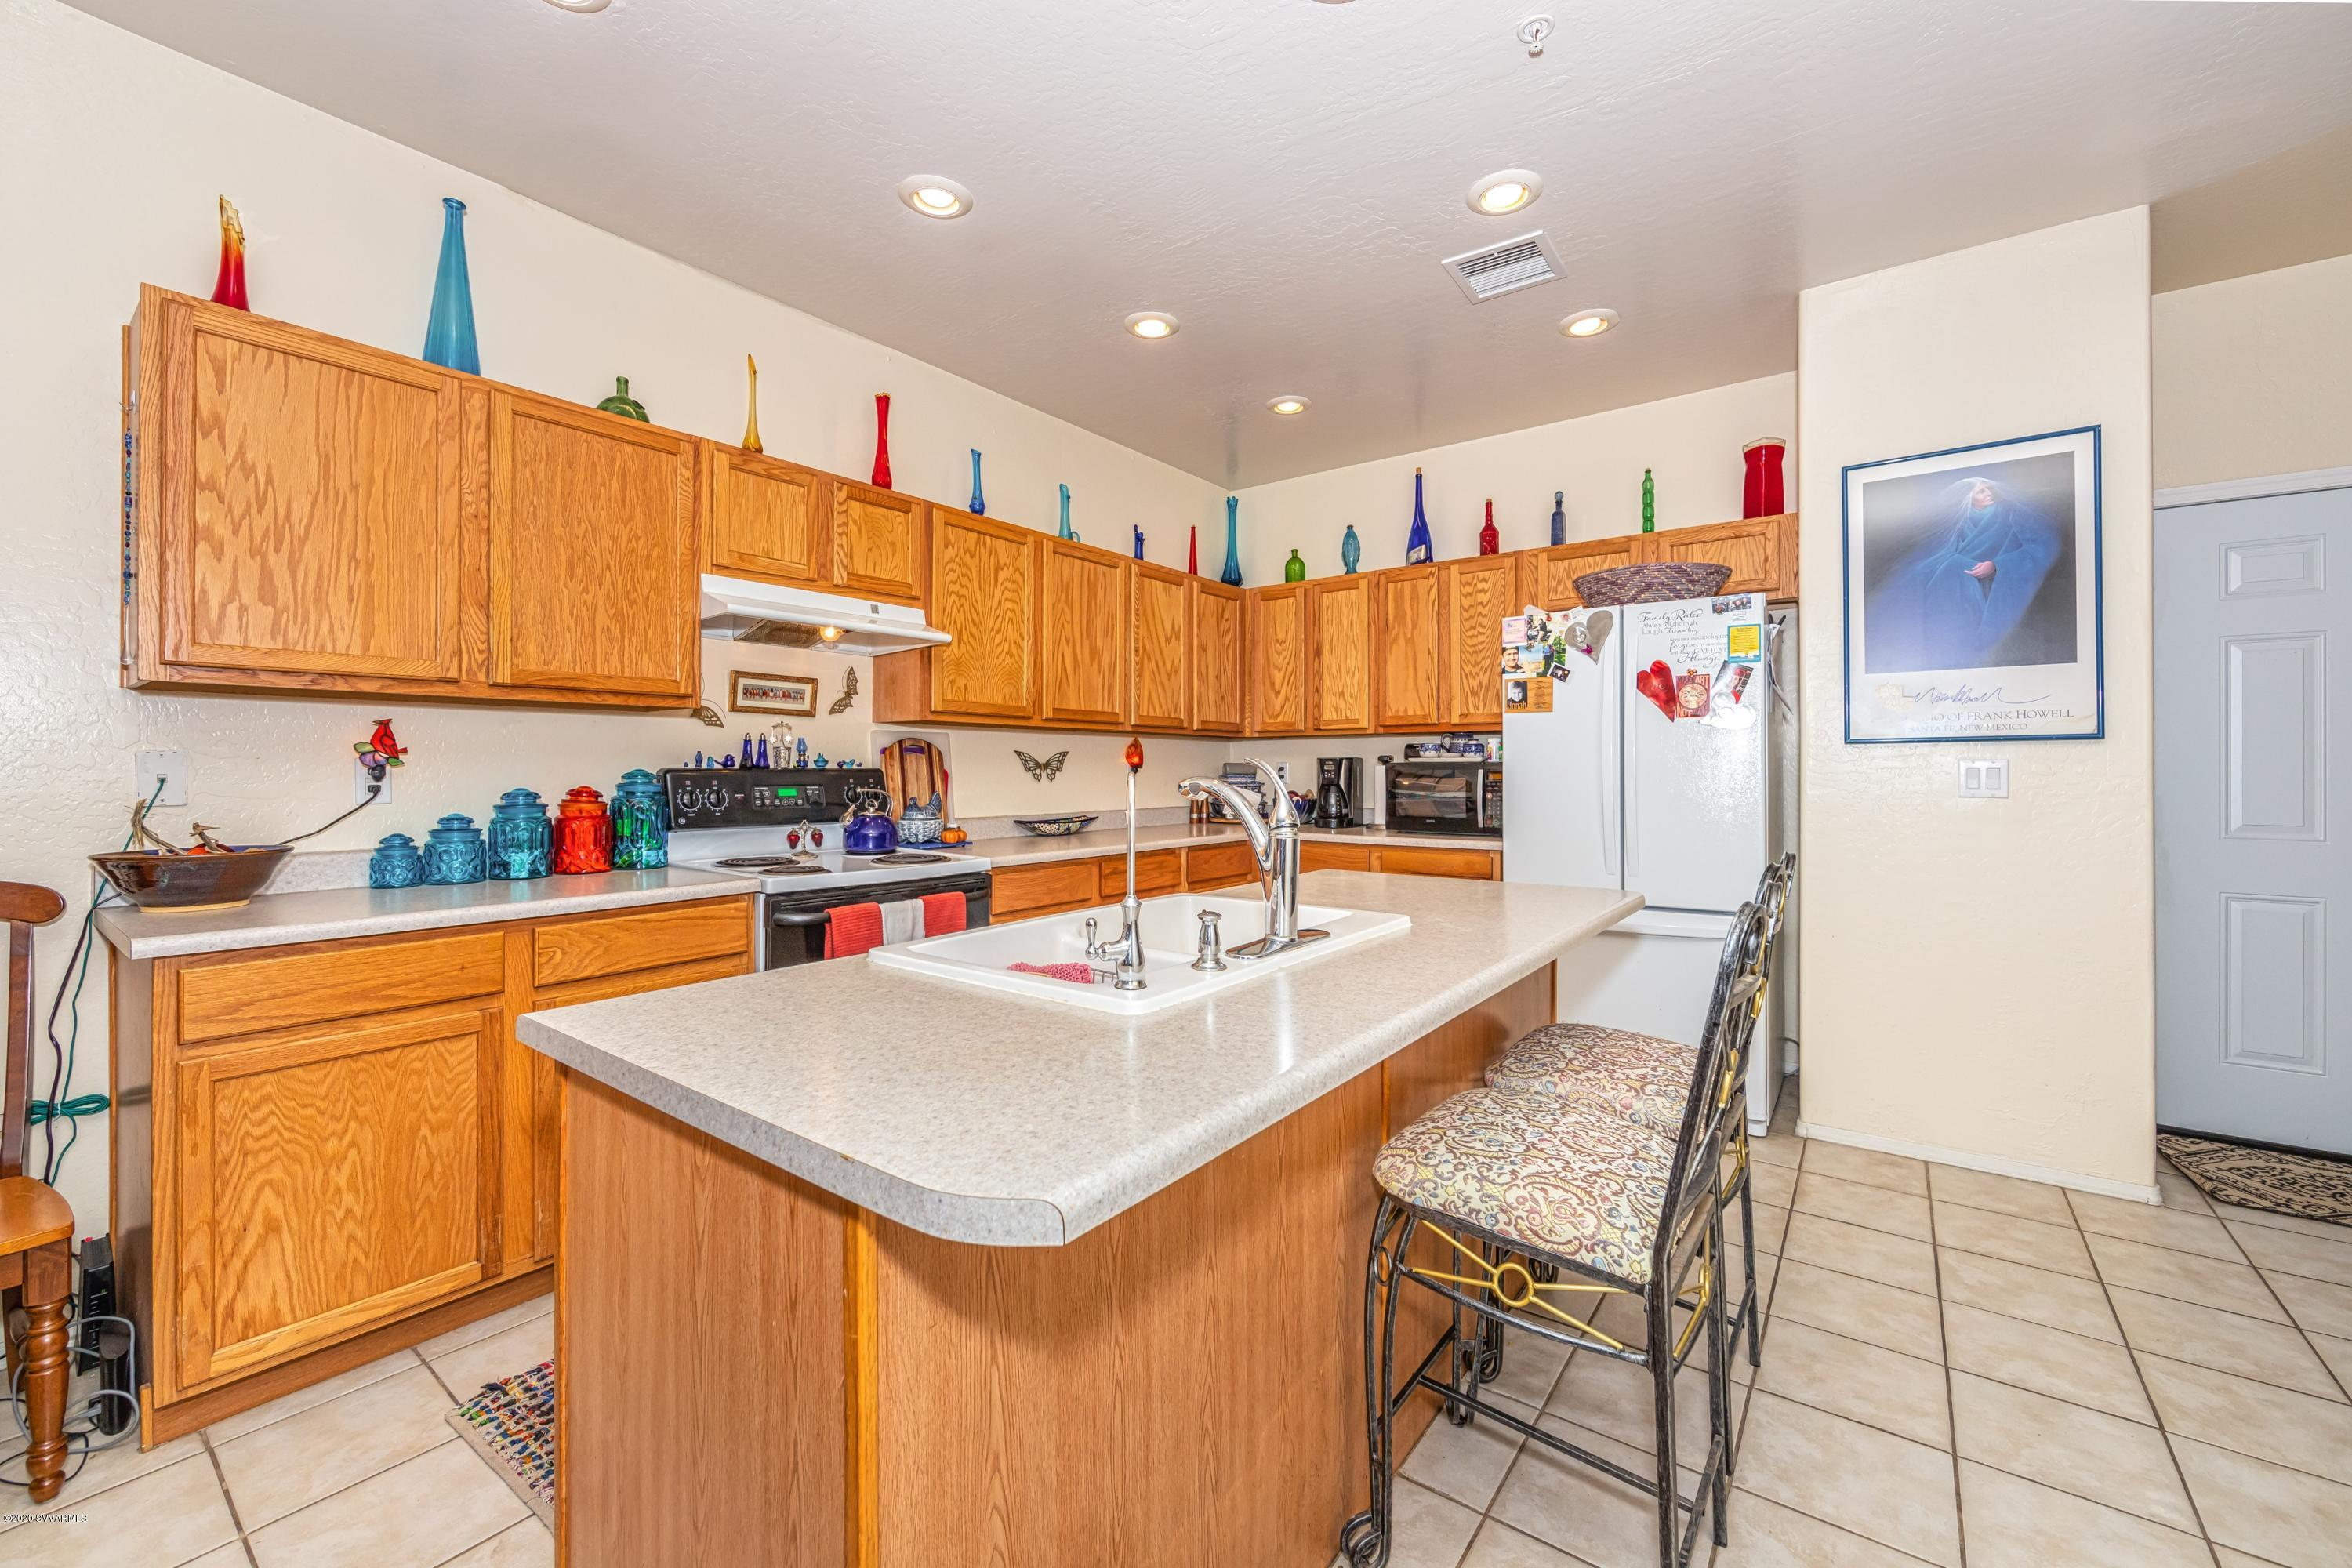 1141 S 17th St Cottonwood, AZ 86326